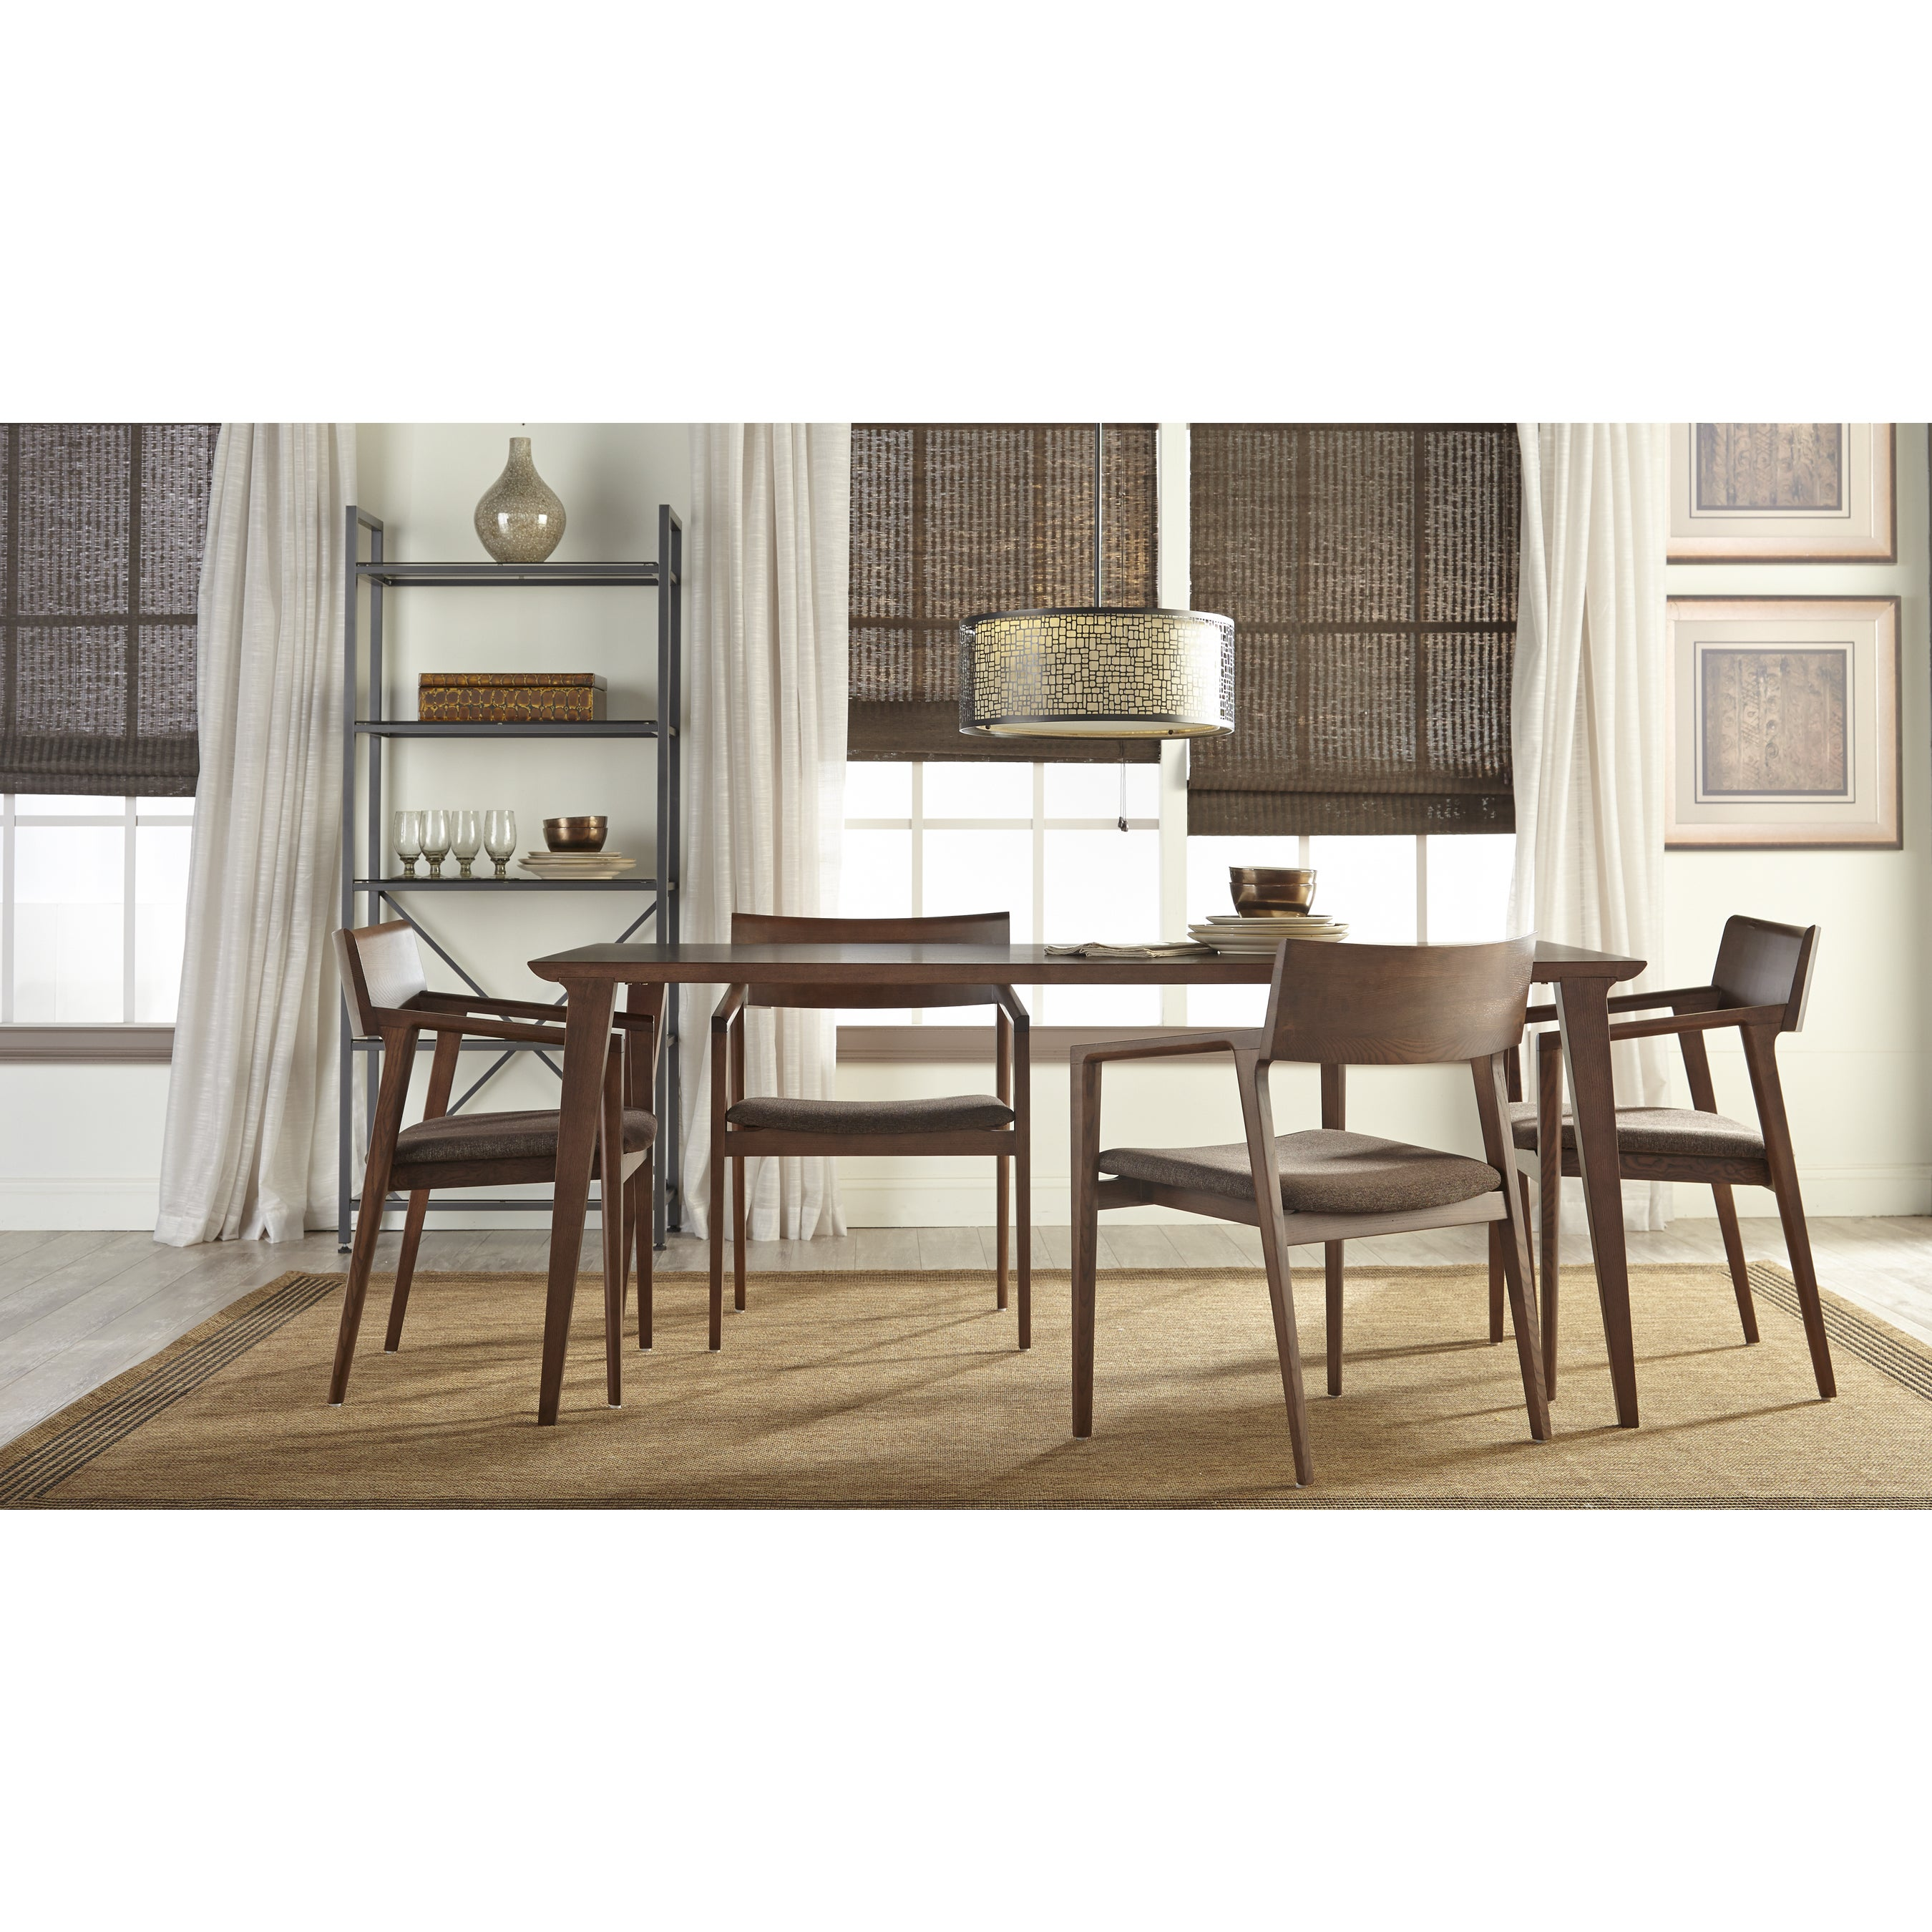 Daffodil Dining Table Walnut Free Shipping Today 21239511